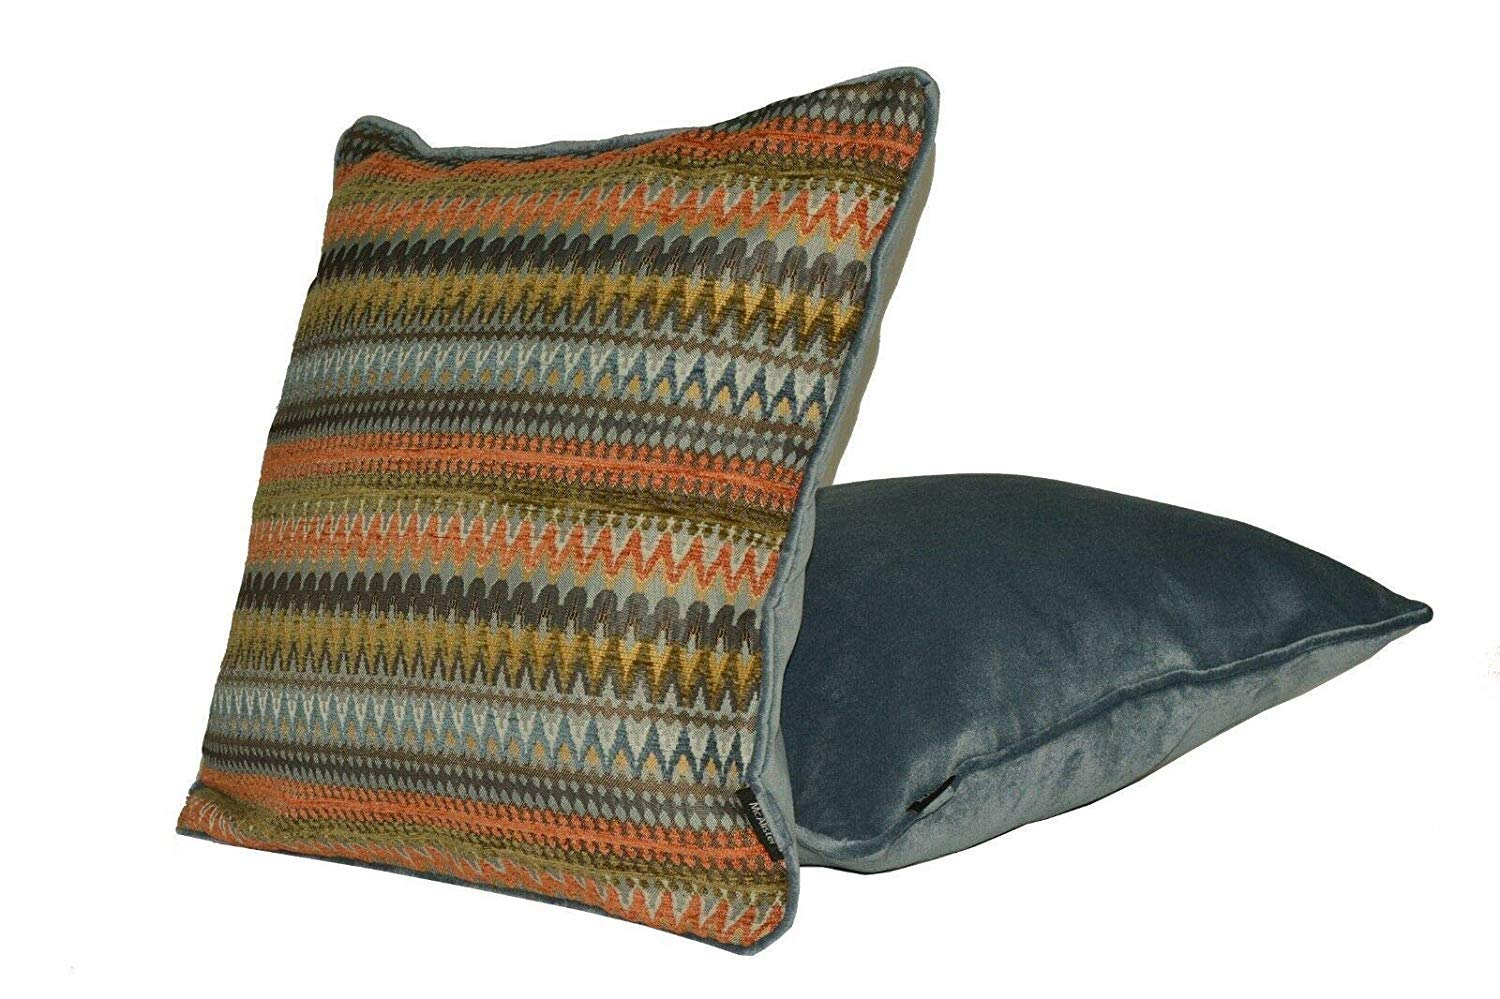 McAlister Textiles Curitiba Filled Pillow Orange Teal Aztec Geometric Design Scatter Decorative Throw Cushion Sham Size – 12 x 20 Inches